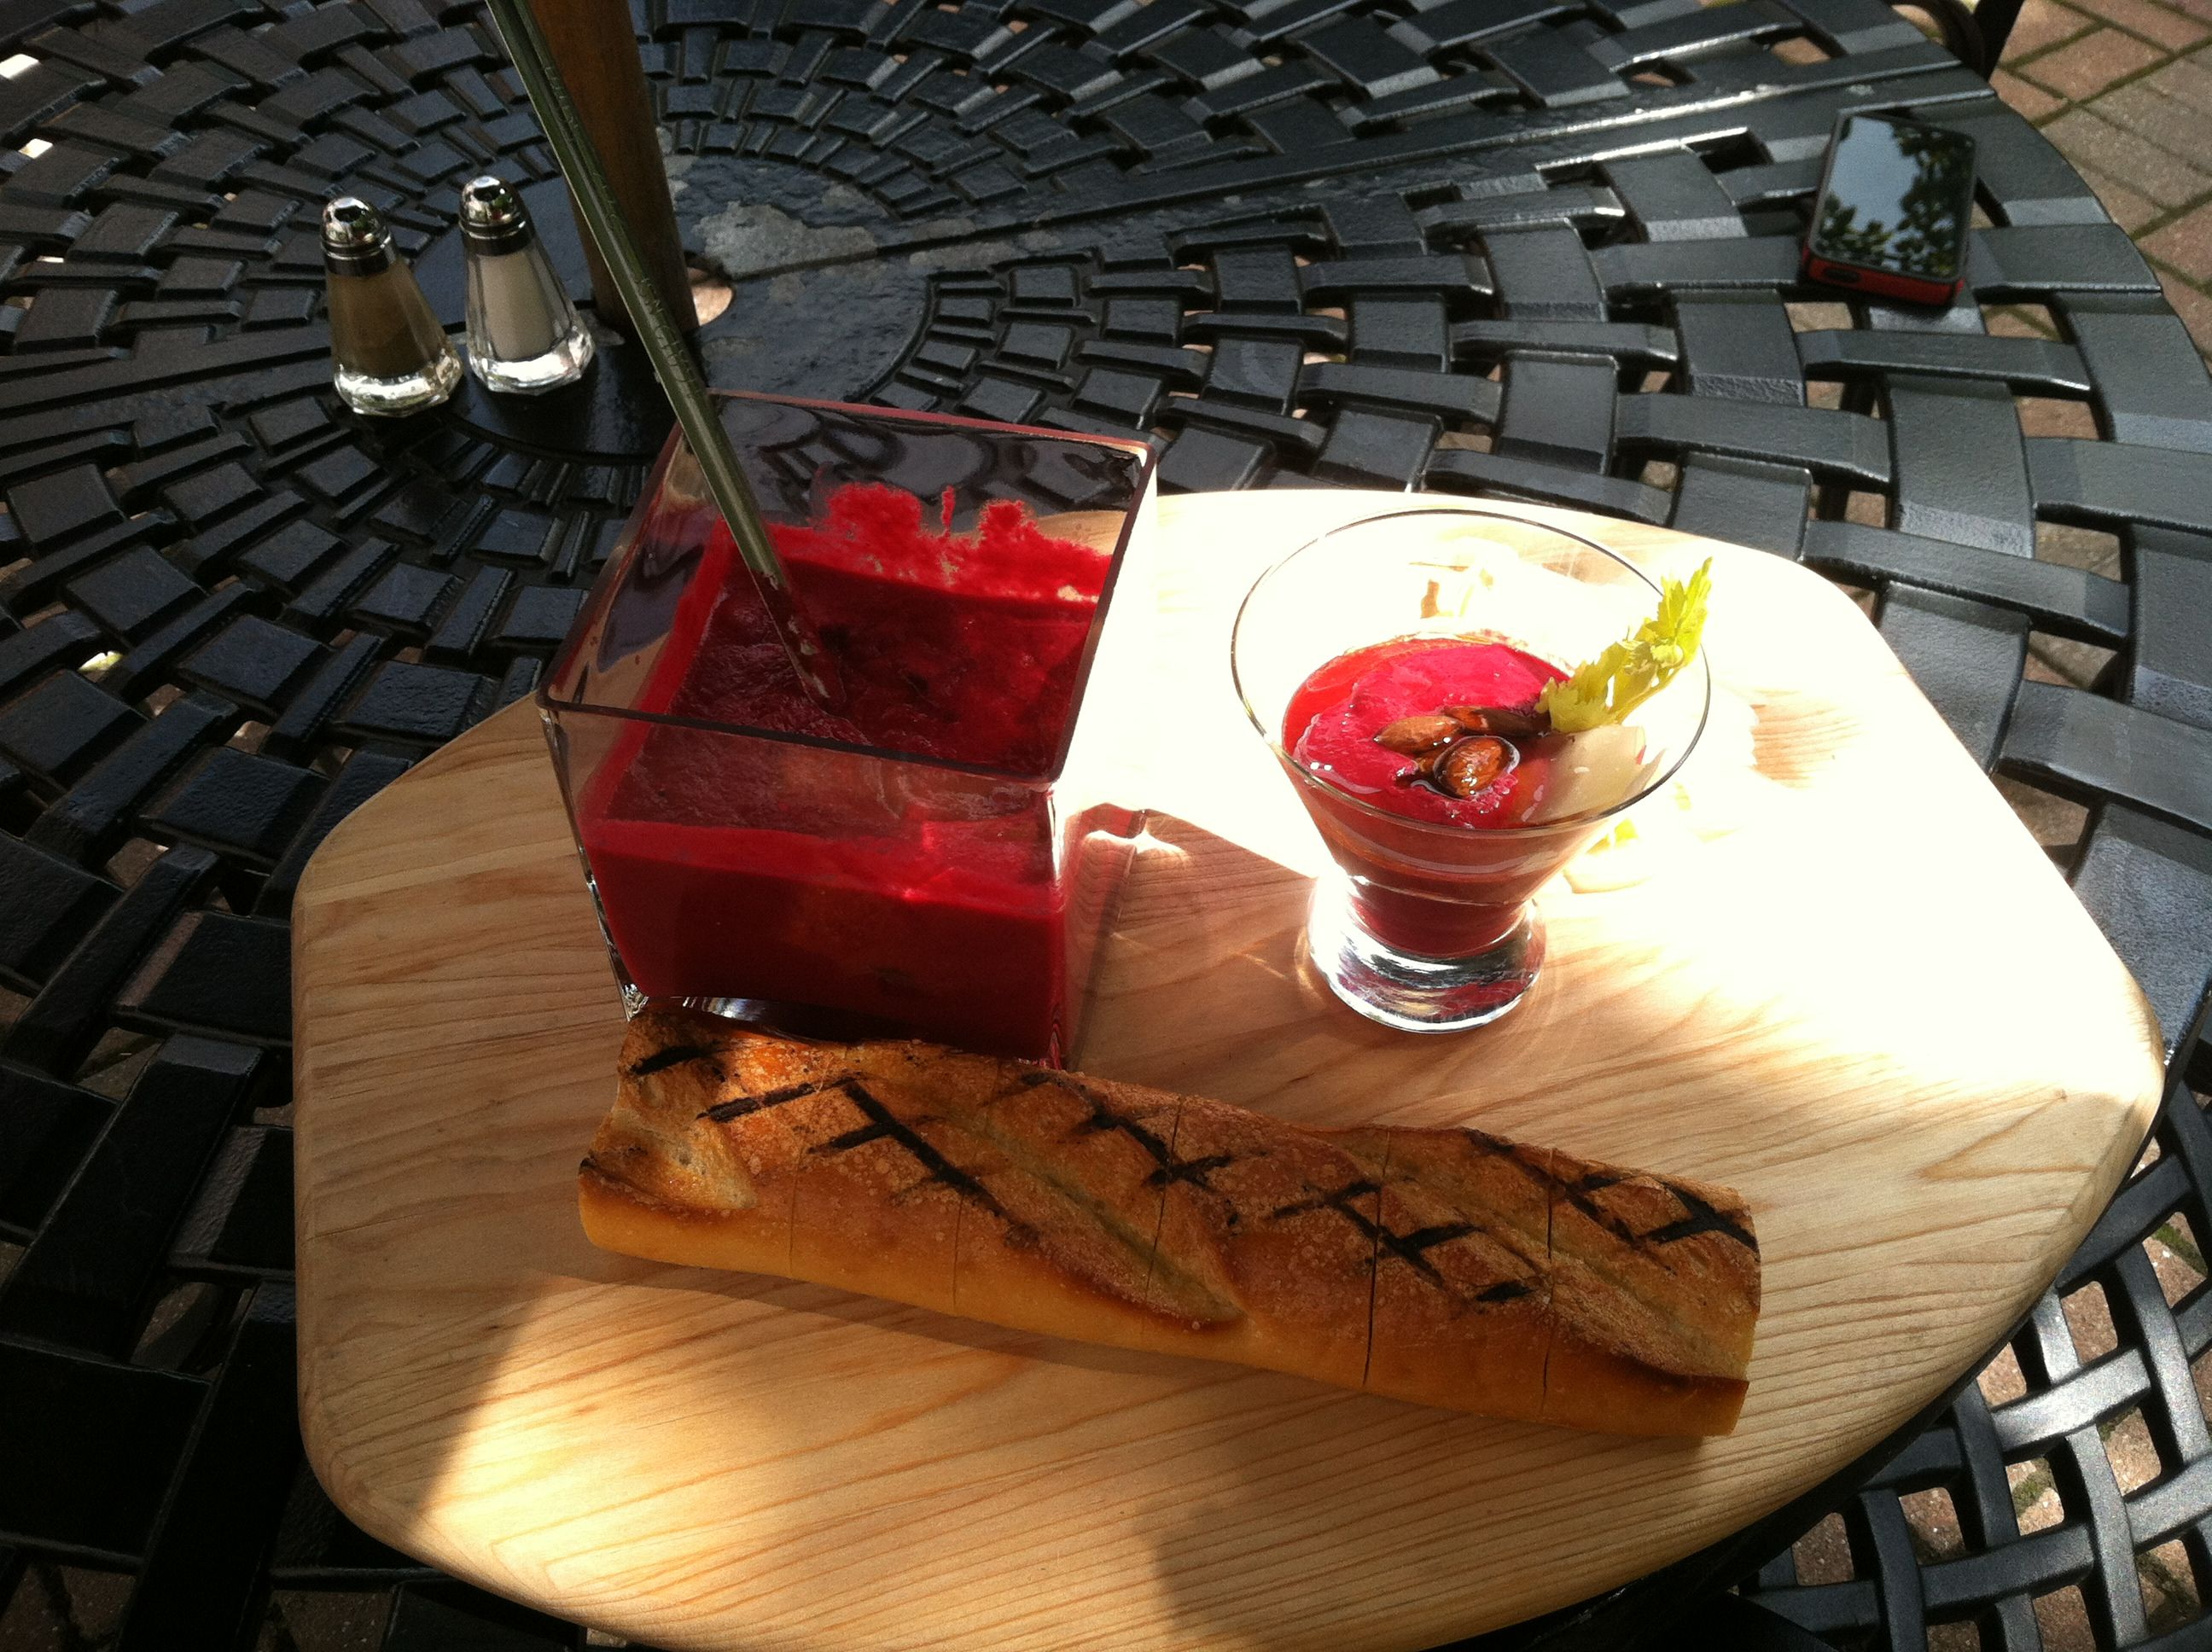 Grilled Beet Soup Amp Baguette In The Garden At Eve S Dine